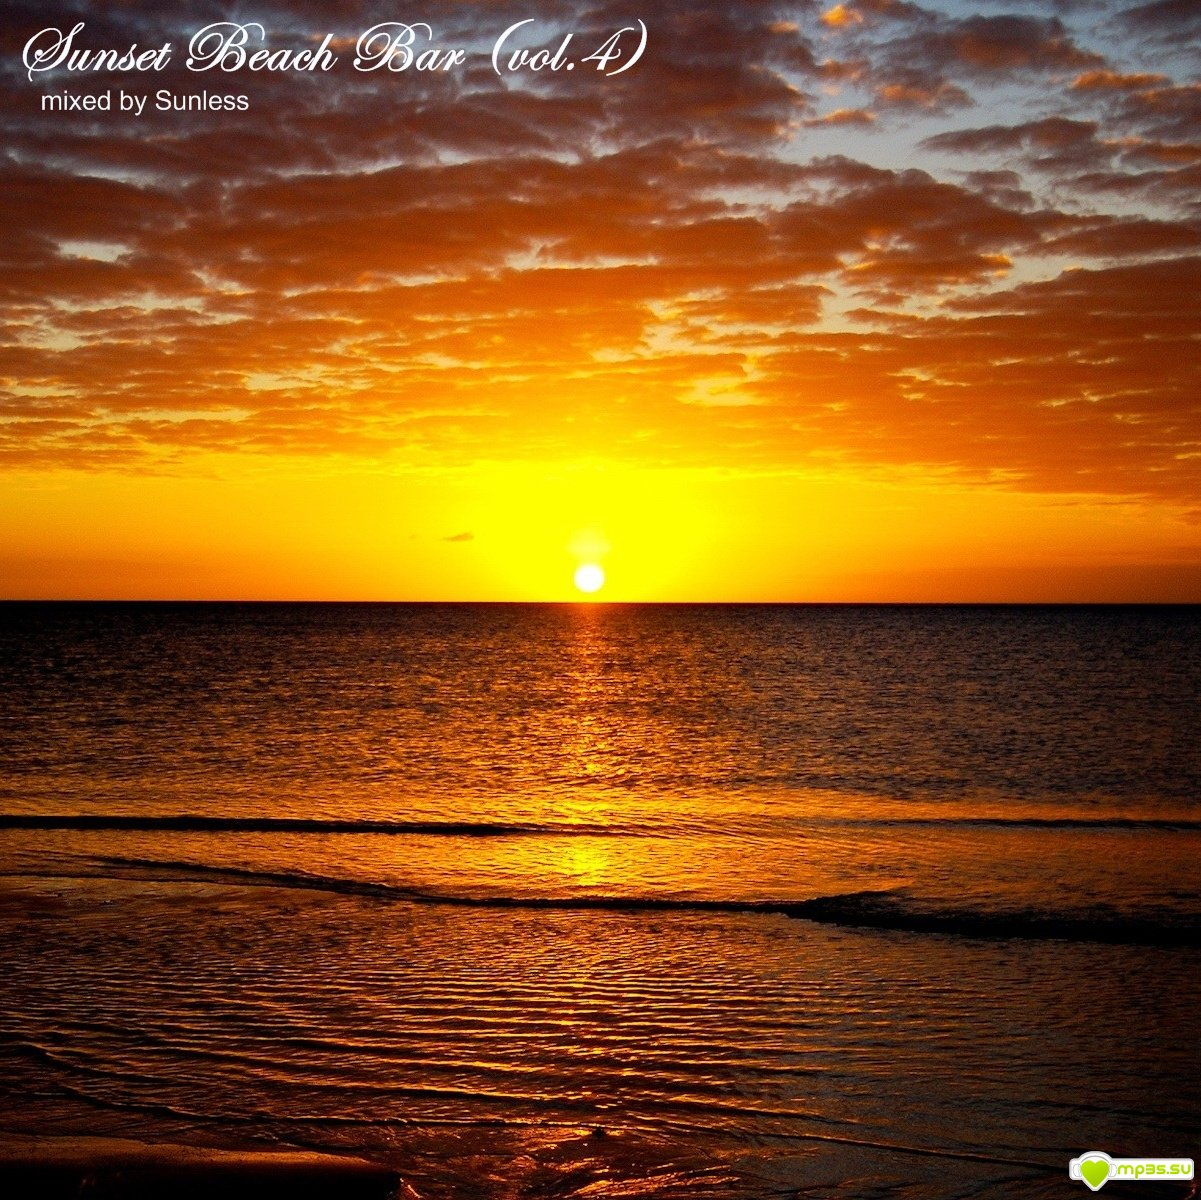 sunset on a beach Professional quality beach sunset images and pictures at very affordable prices with over 50 million stunning photos to choose from we've got what you need.